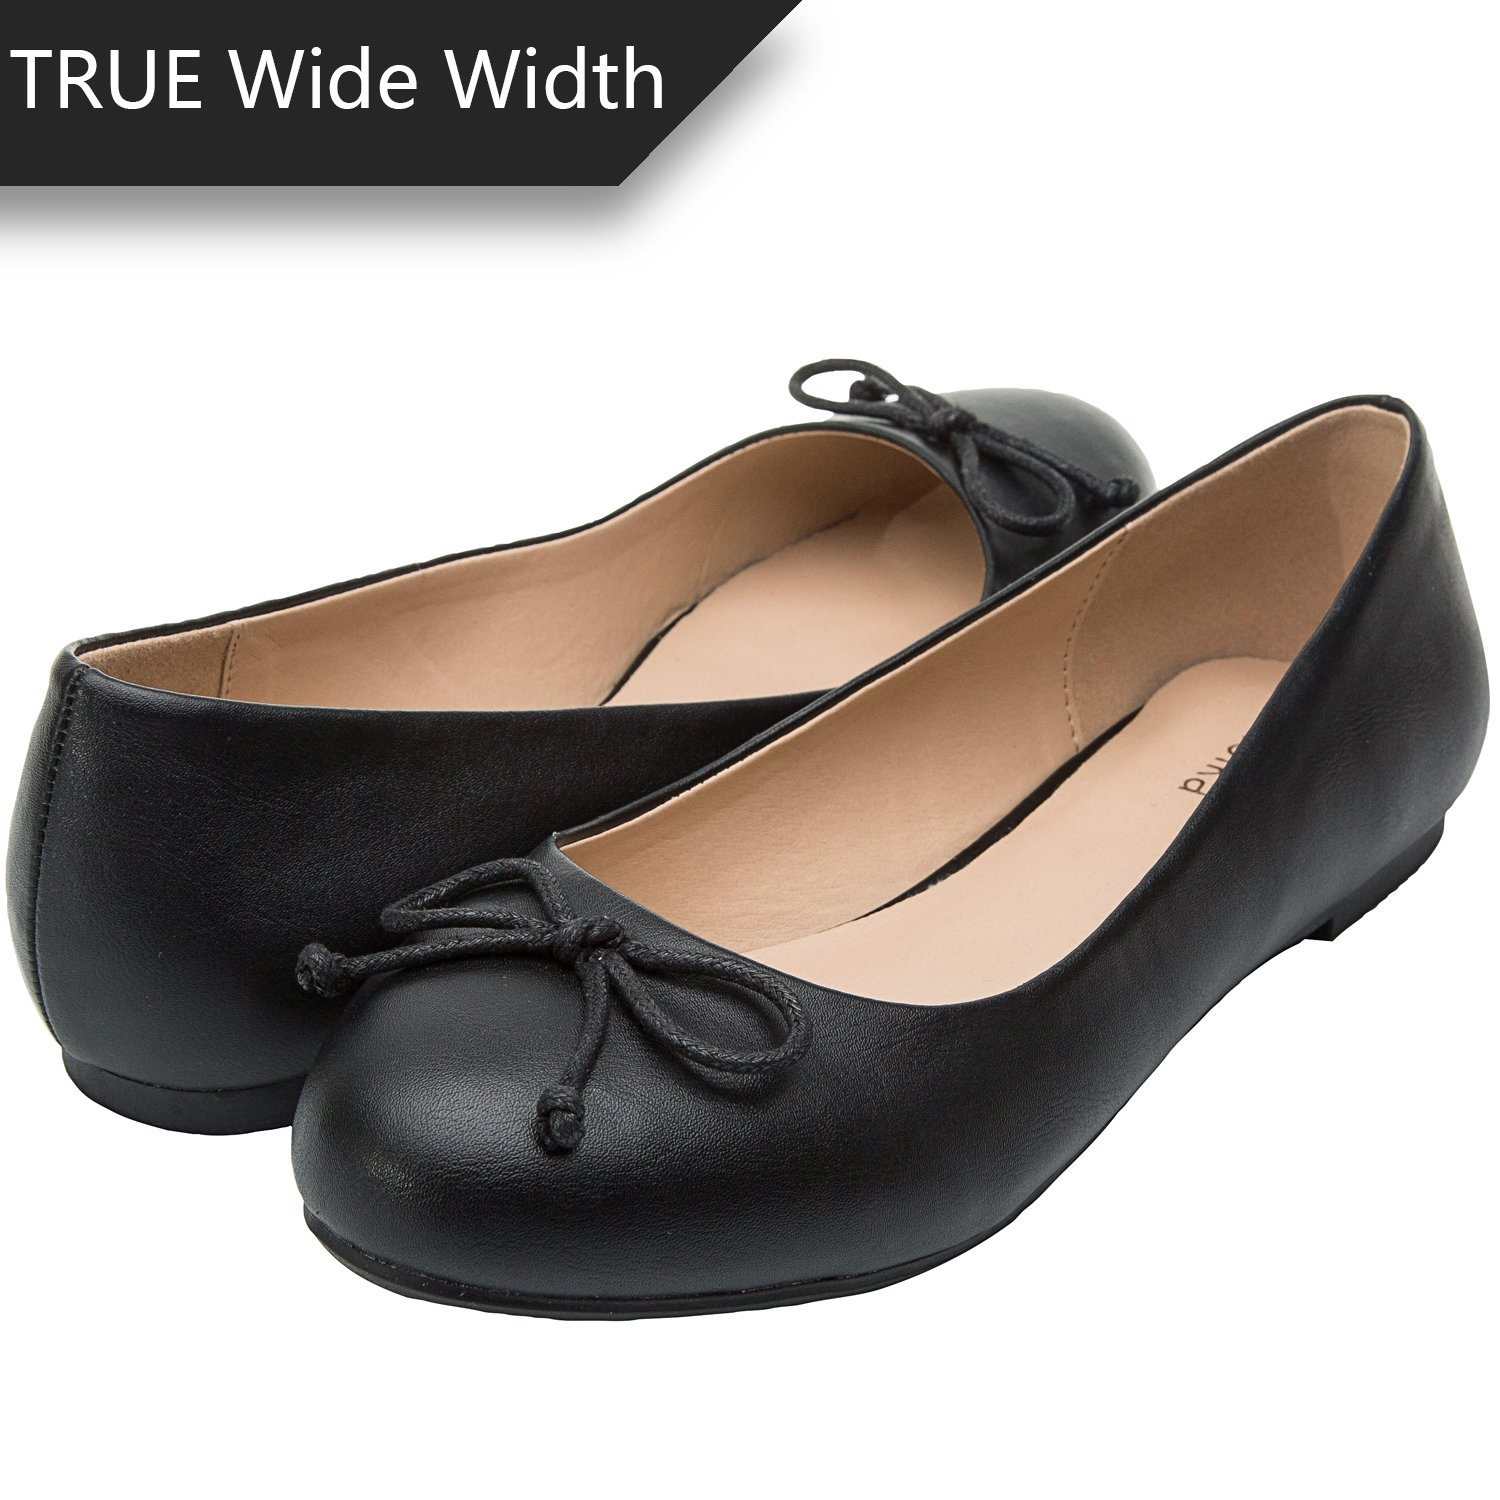 Luoika Women's Wide Width Flat Shoes - Comfortable Slip On Round Toe Ballet Flats.(180338 Black,10WW)